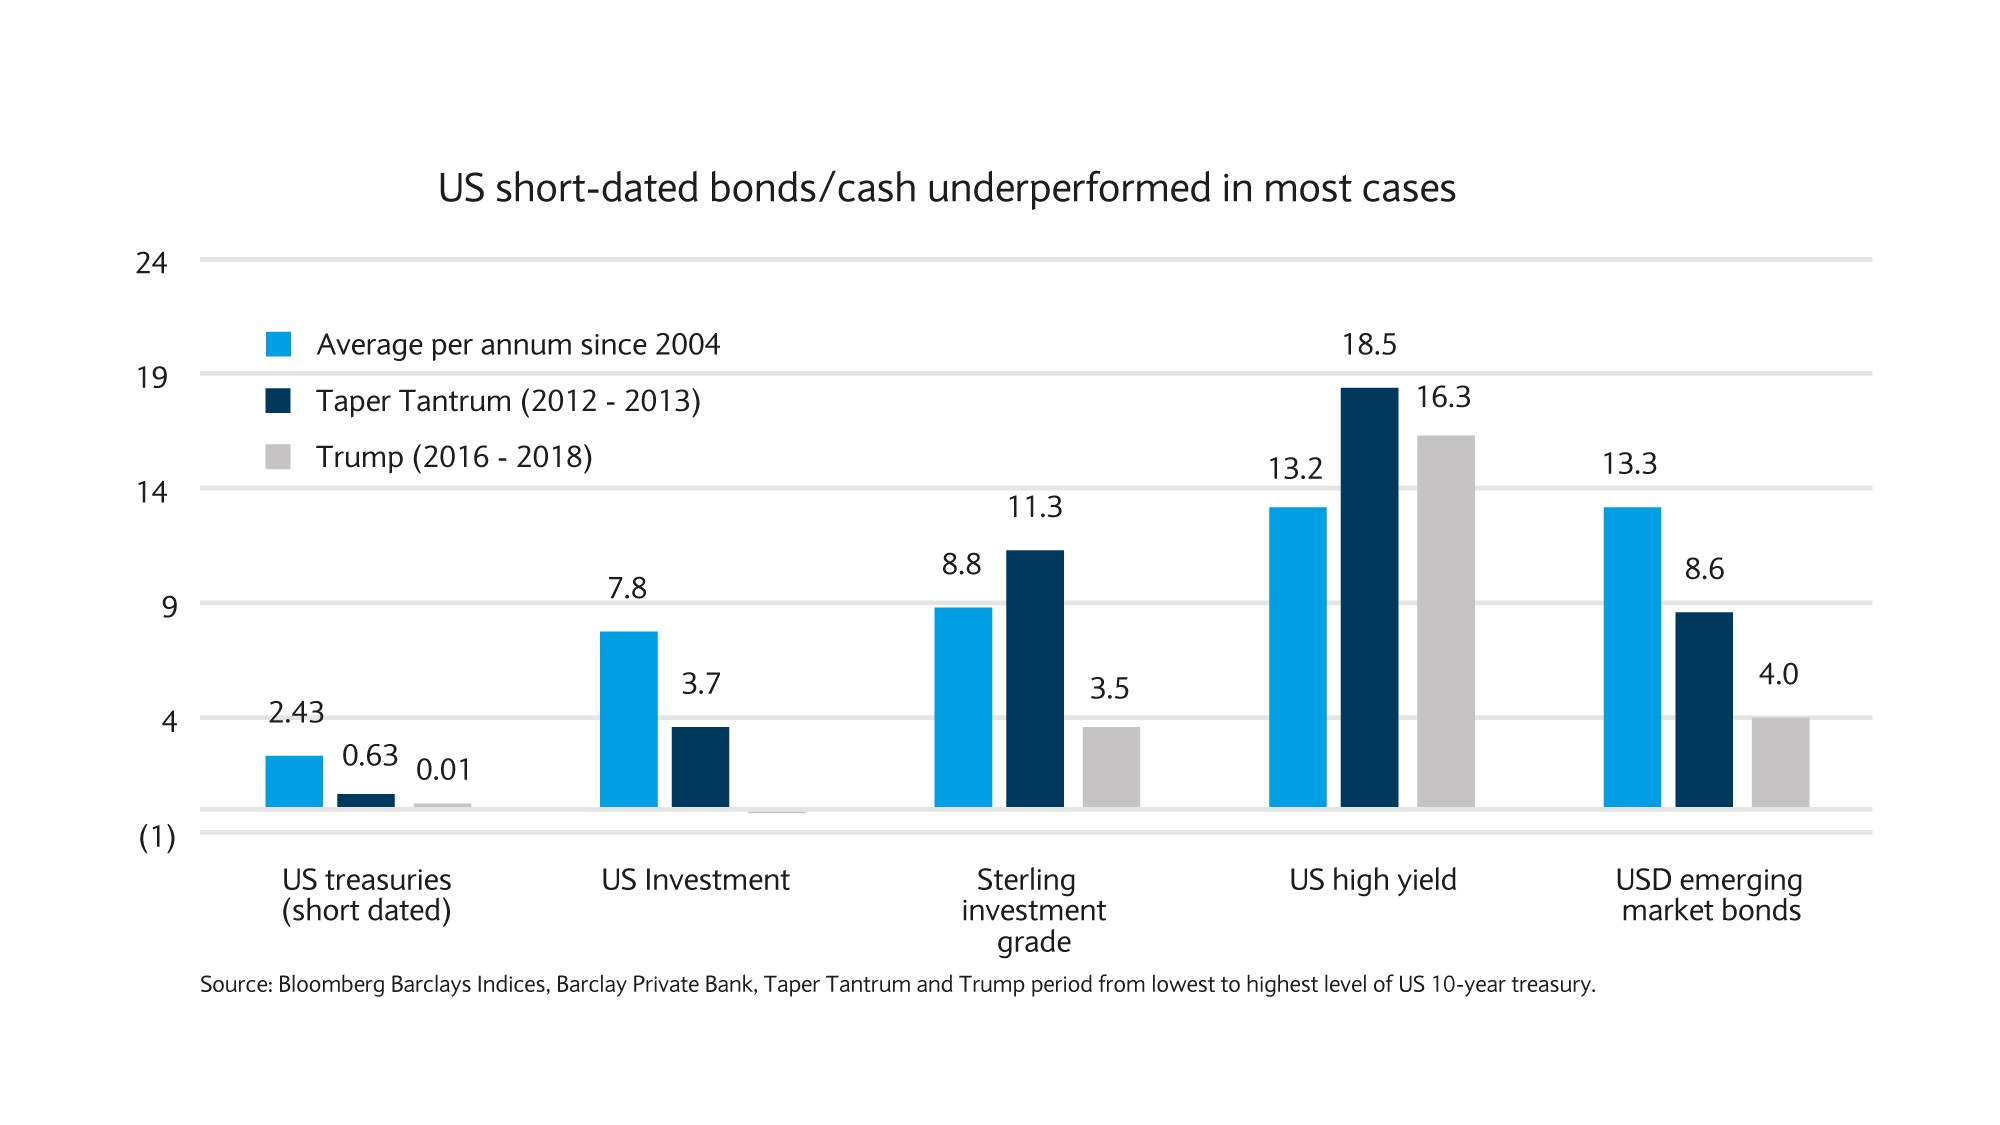 US short-dated bonds/cash underperformed in most cases